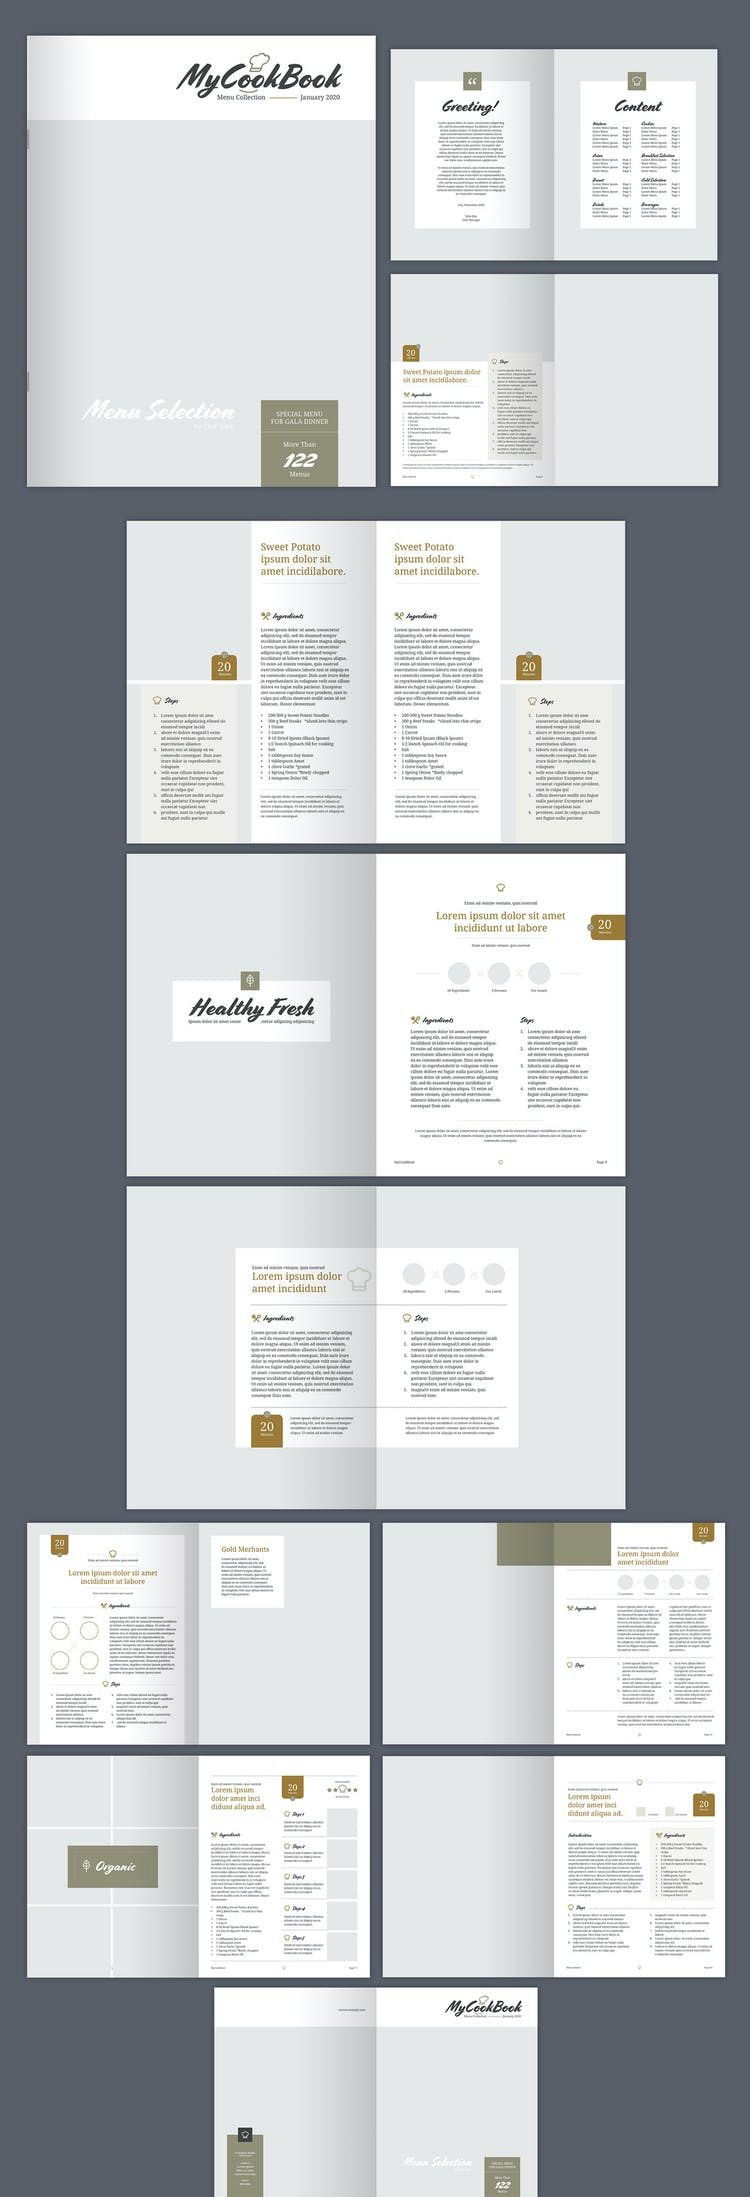 005 Unusual Indesign Book Layout Template Highest Quality  Free DownloadFull